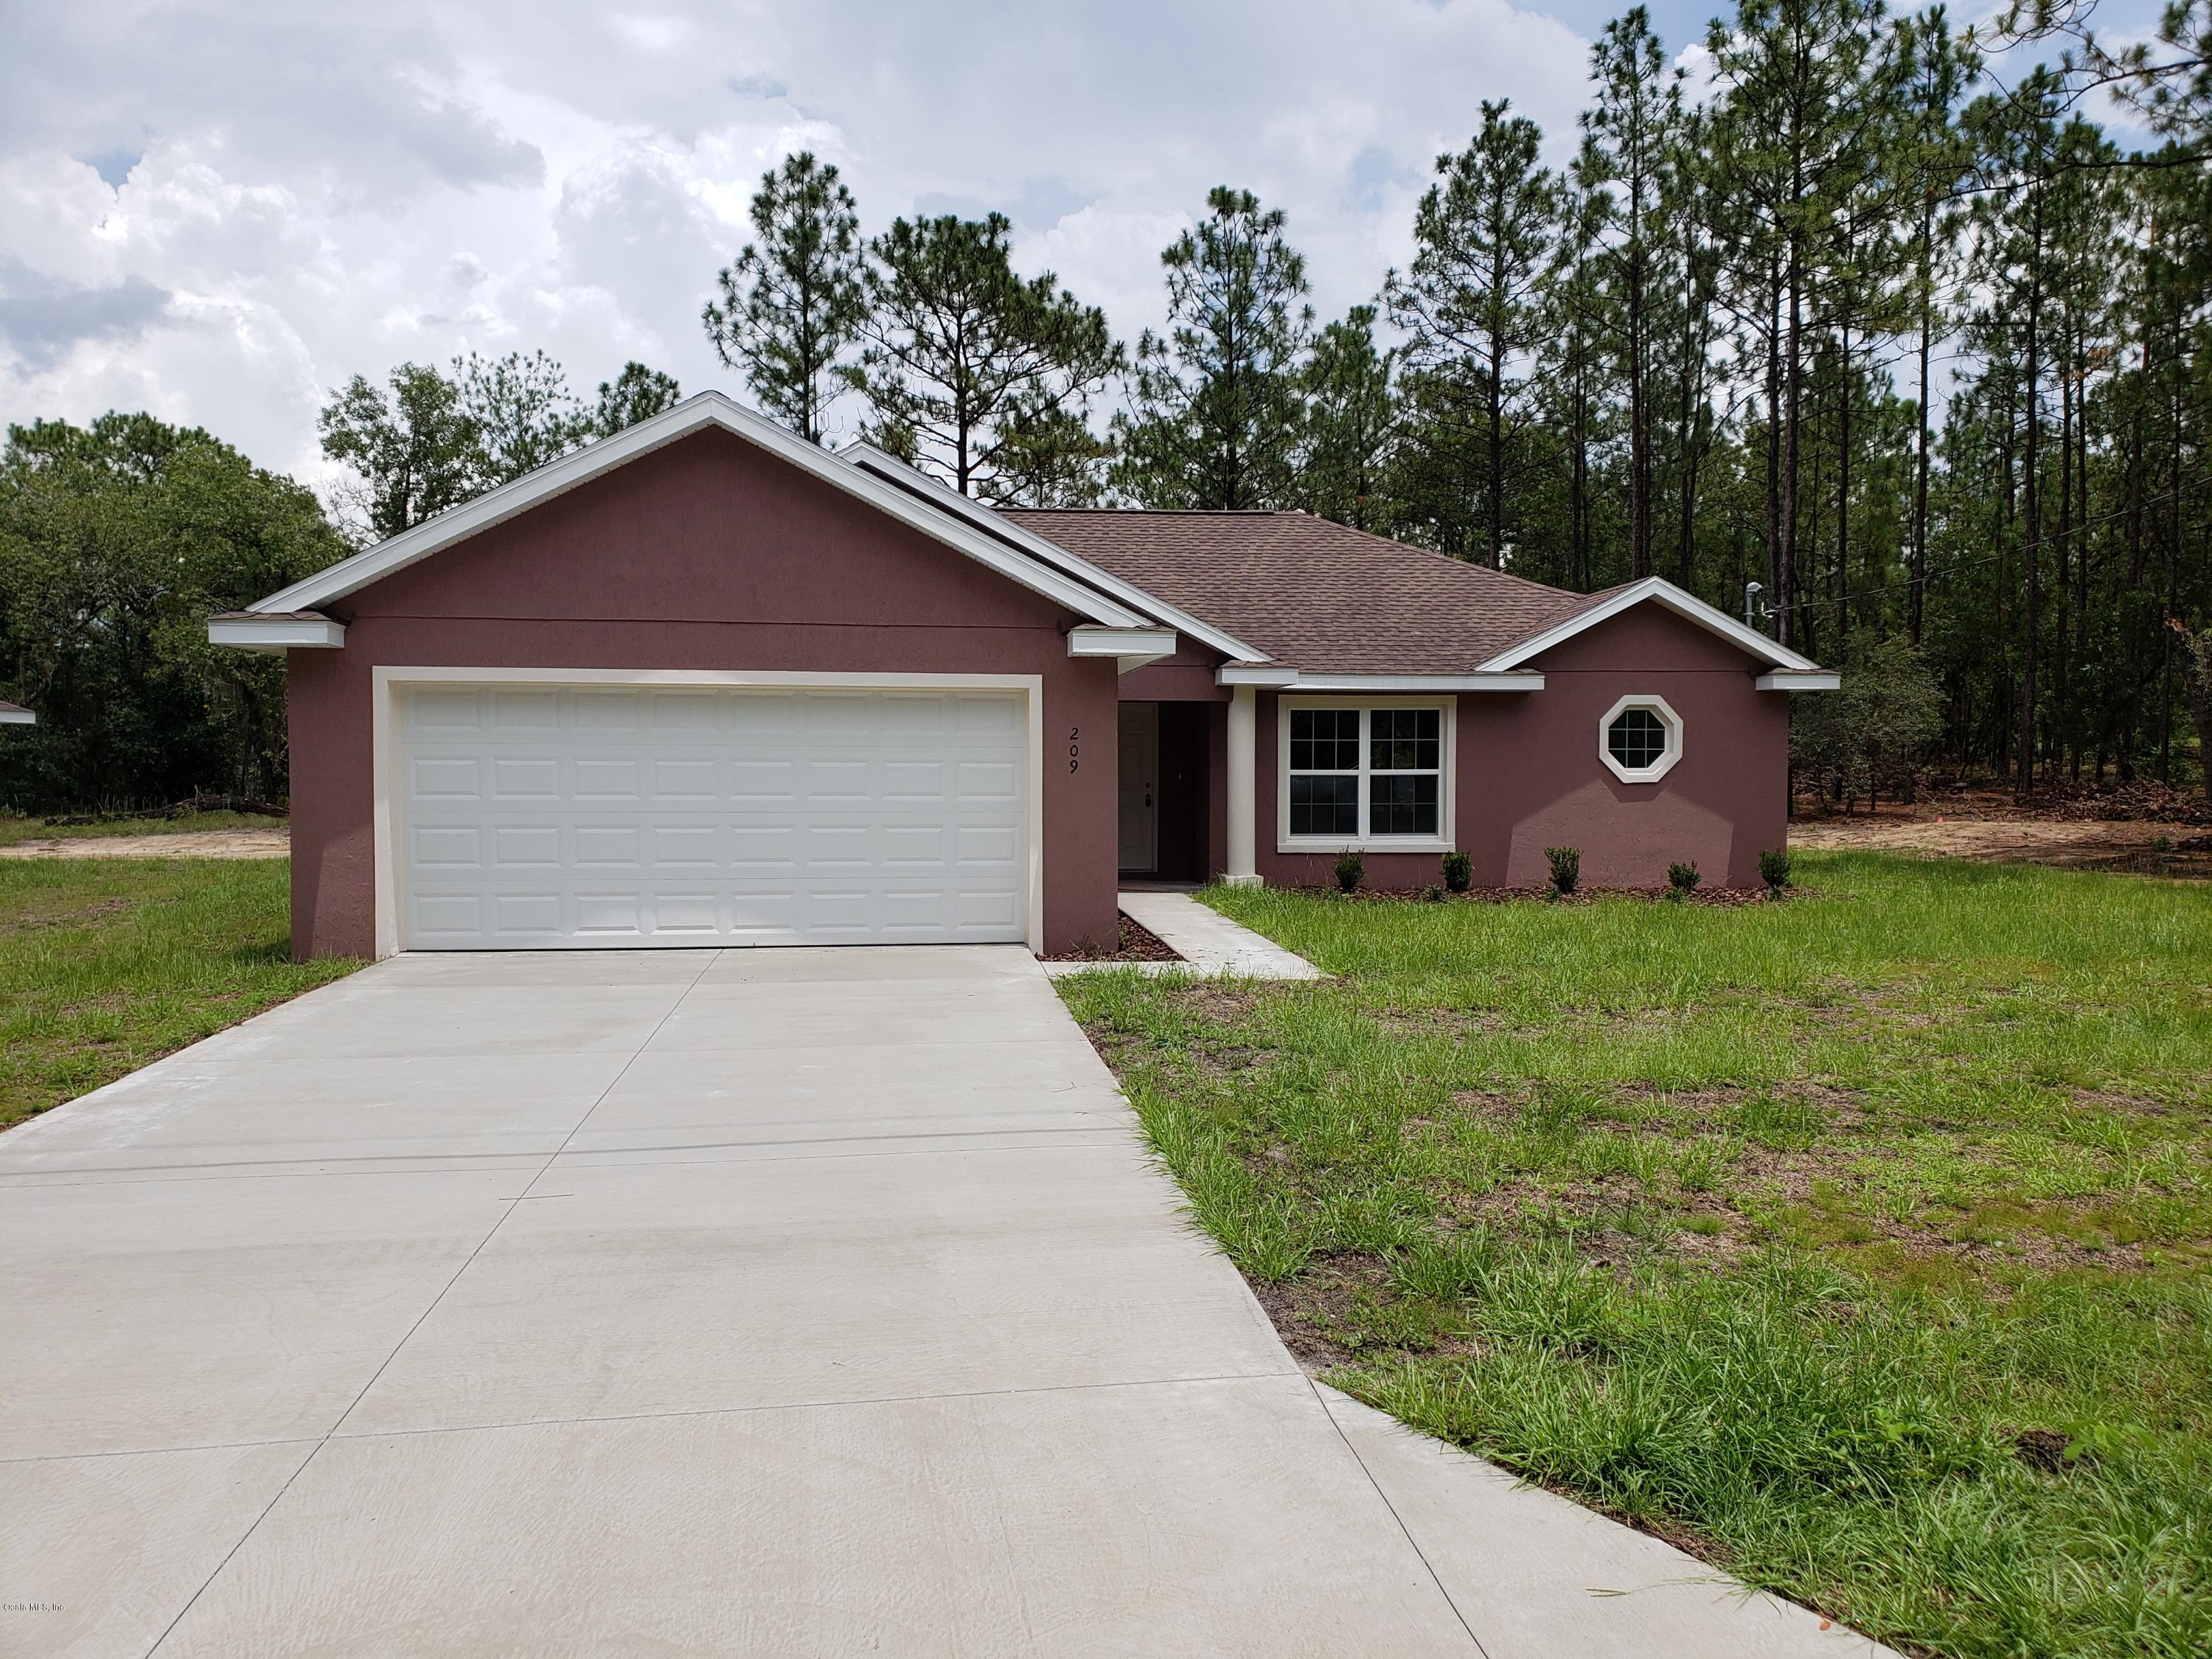 209 OAK LANE CIRCLE, OCALA, FL 34472